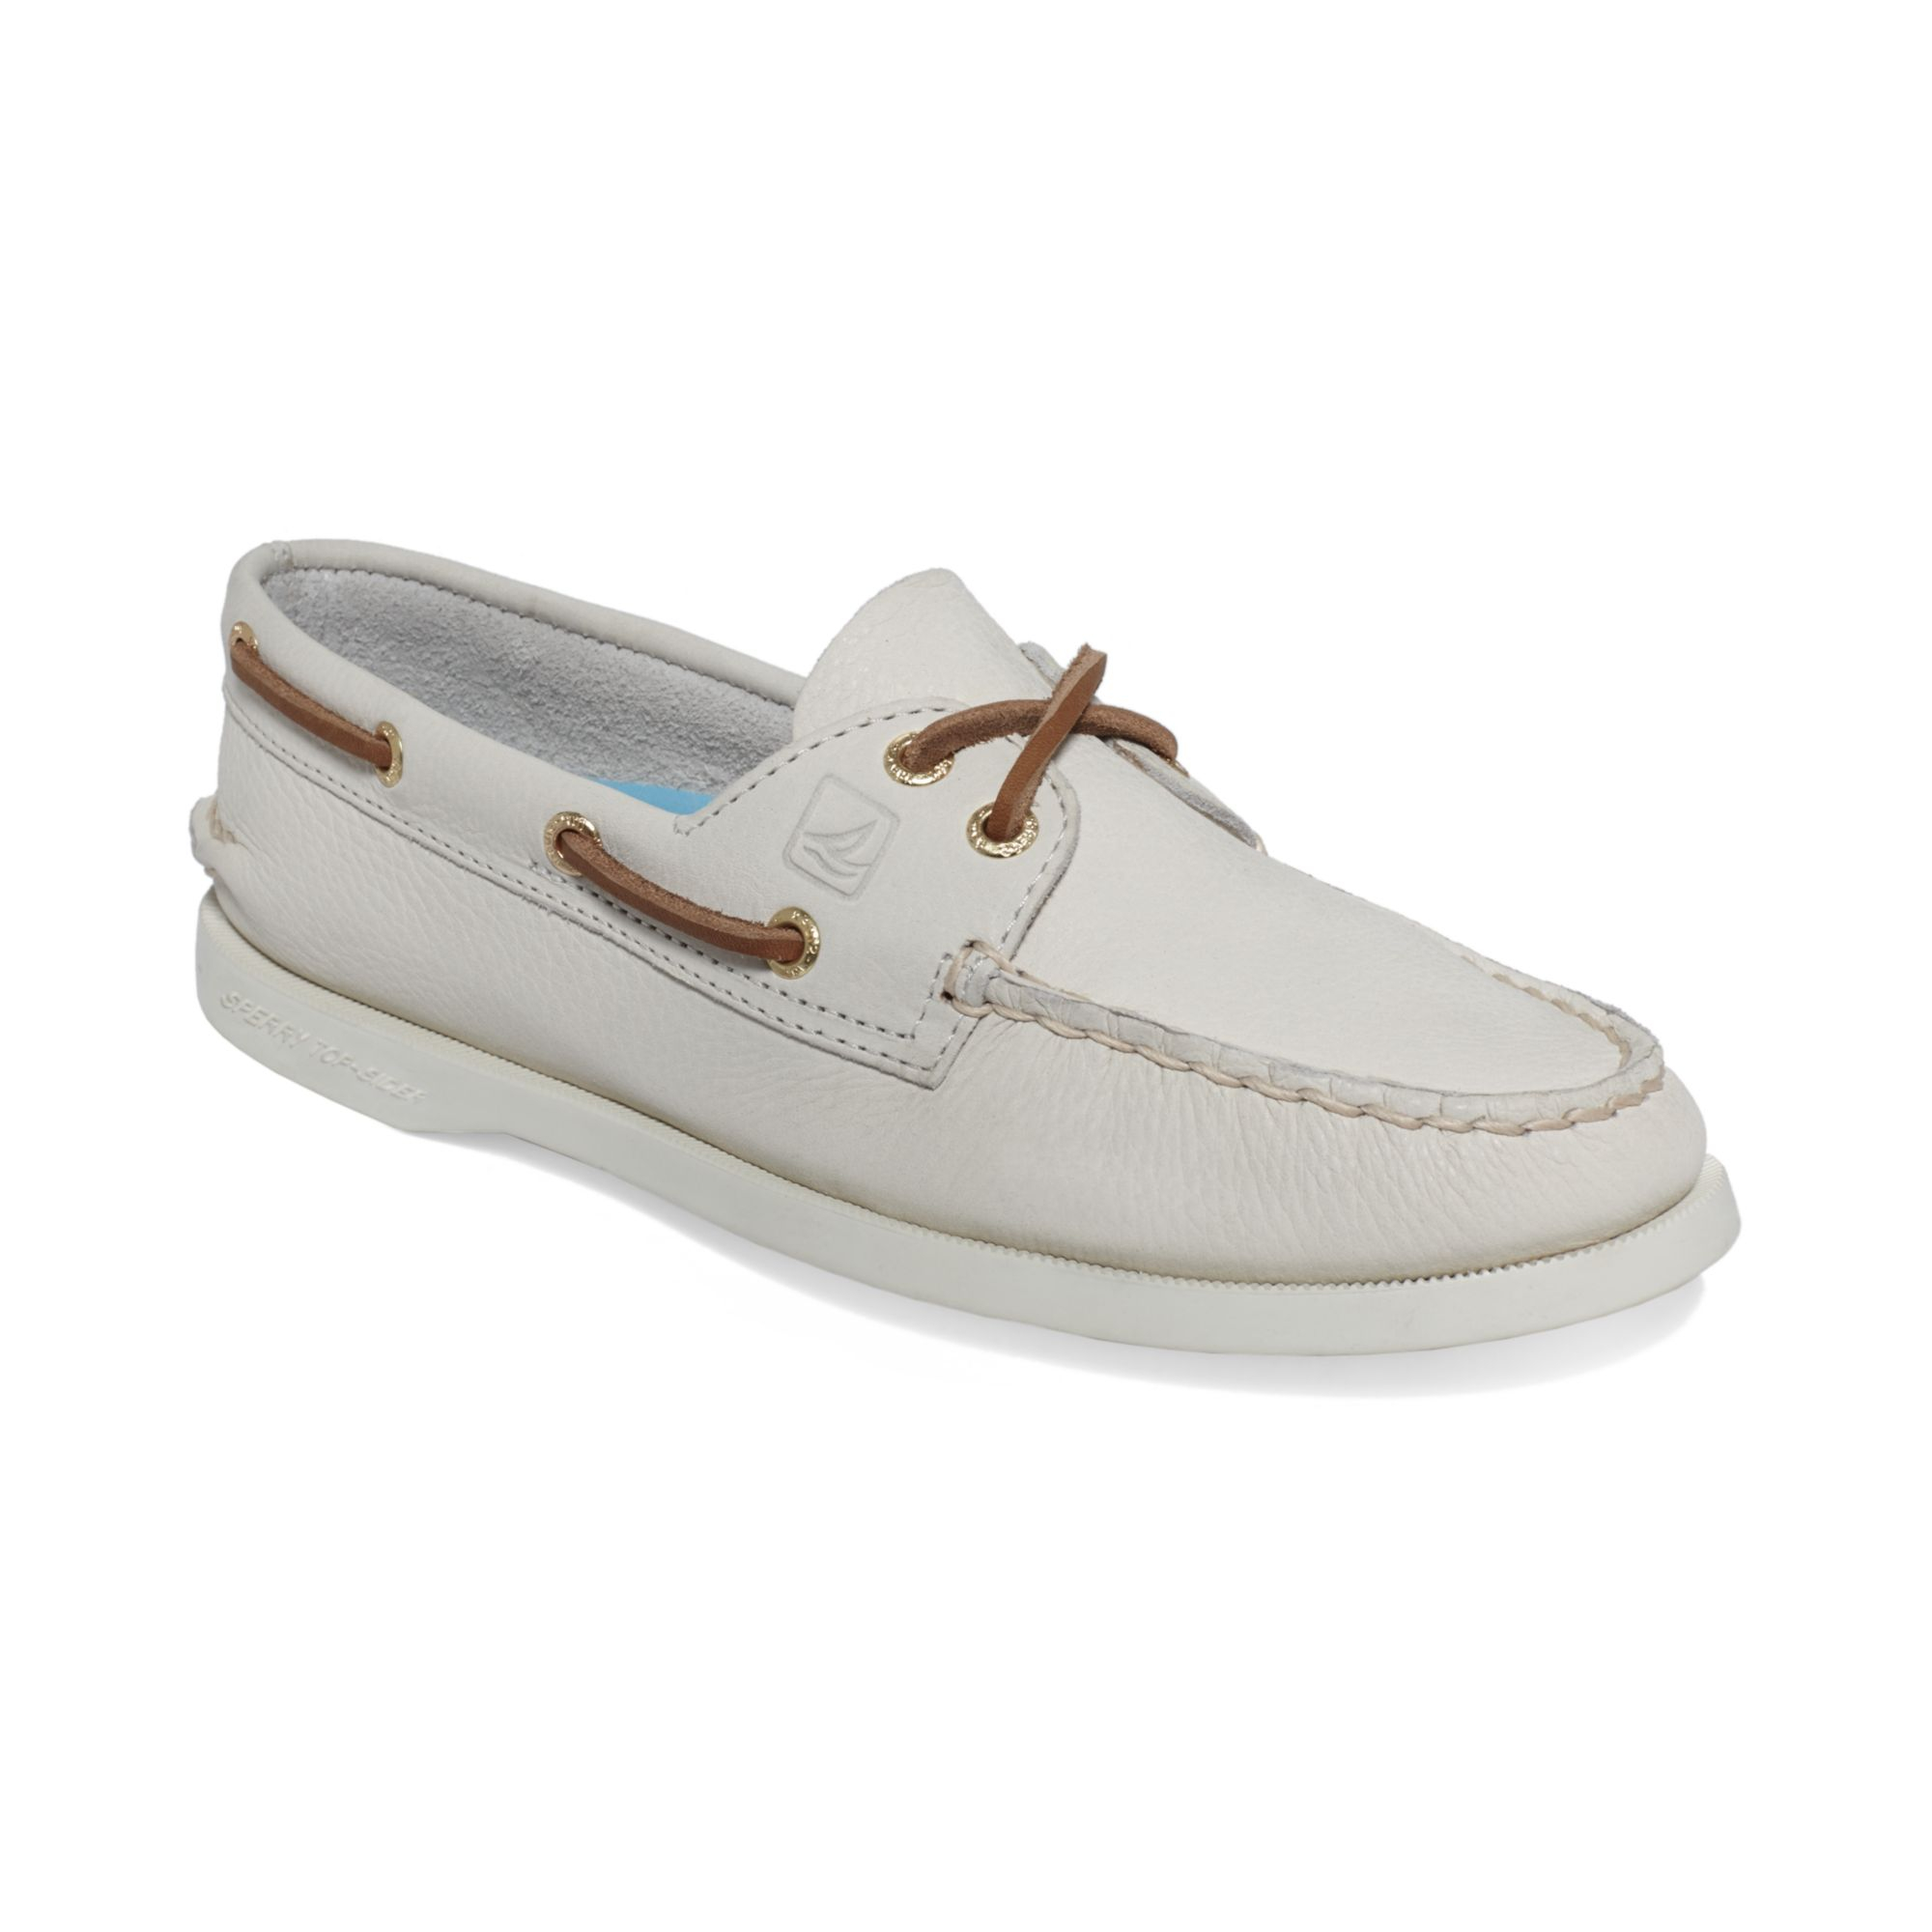 Sperry top-sider Womens Ao Boat Shoes in White | Lyst